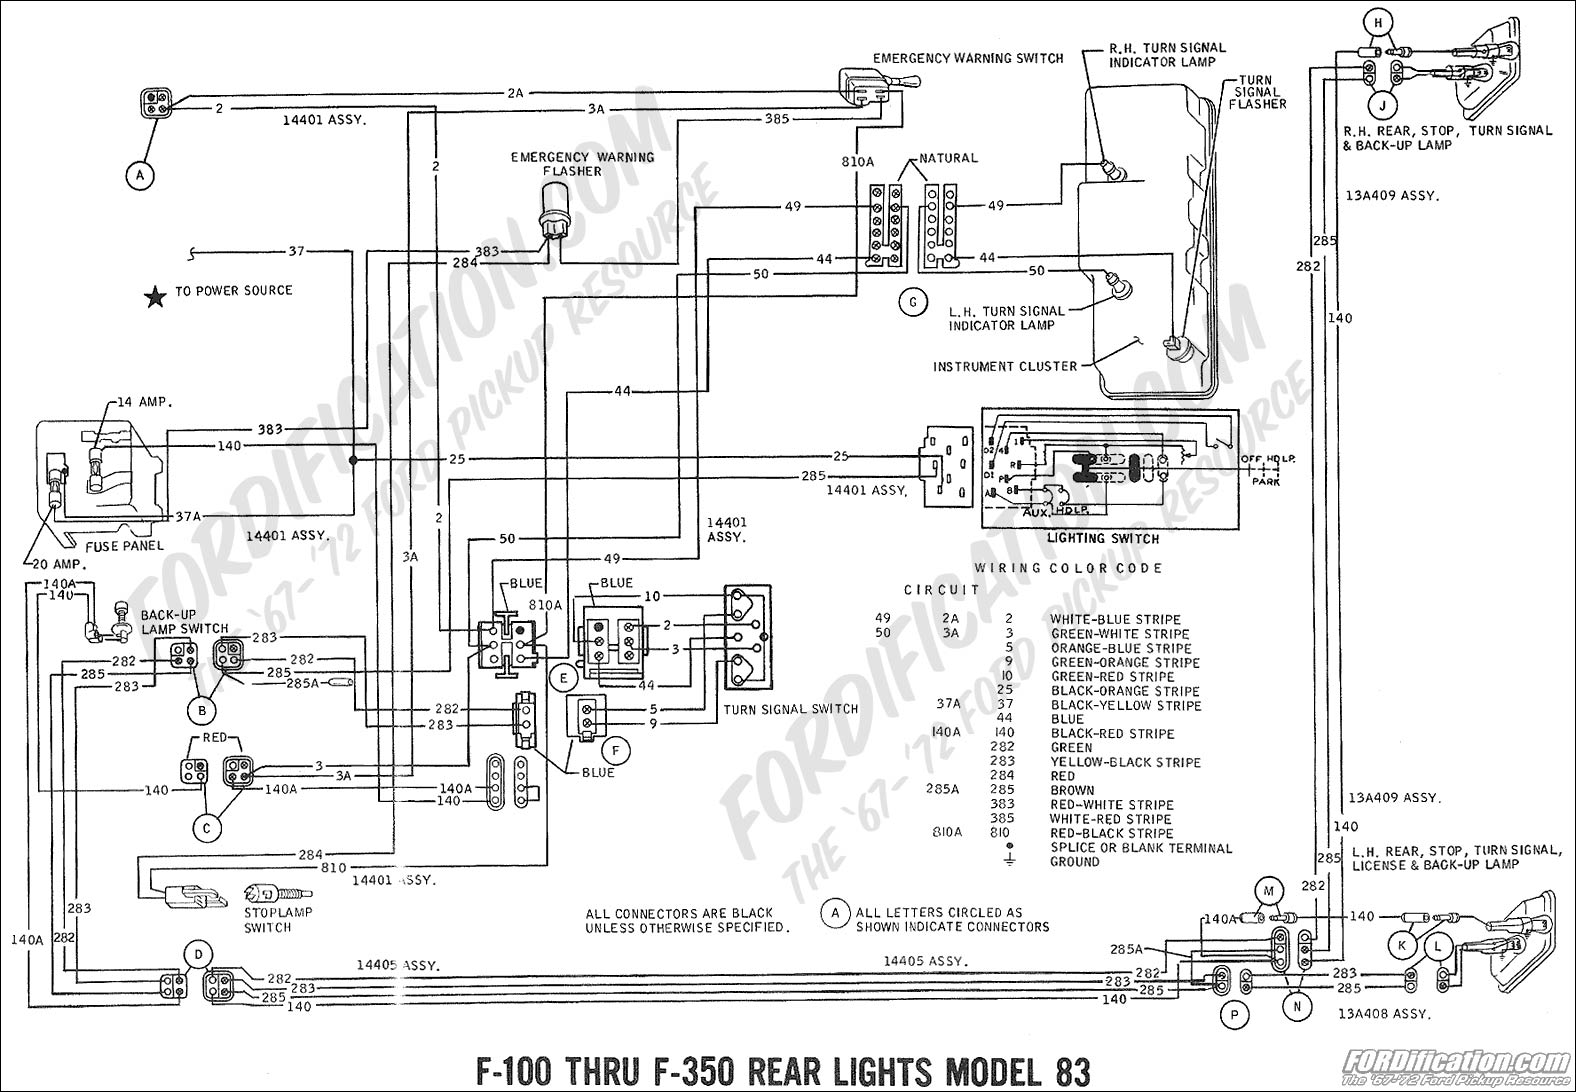 [QNCB_7524]  02 Ford F550 Headlight Wiring Diagrams 4230 John Deere Wiring Diagram -  sule.art-40.autoprestige-utilitaire.fr | 2106 Ford Headlight Wiring Diagram |  | Wiring Diagram and Schematics